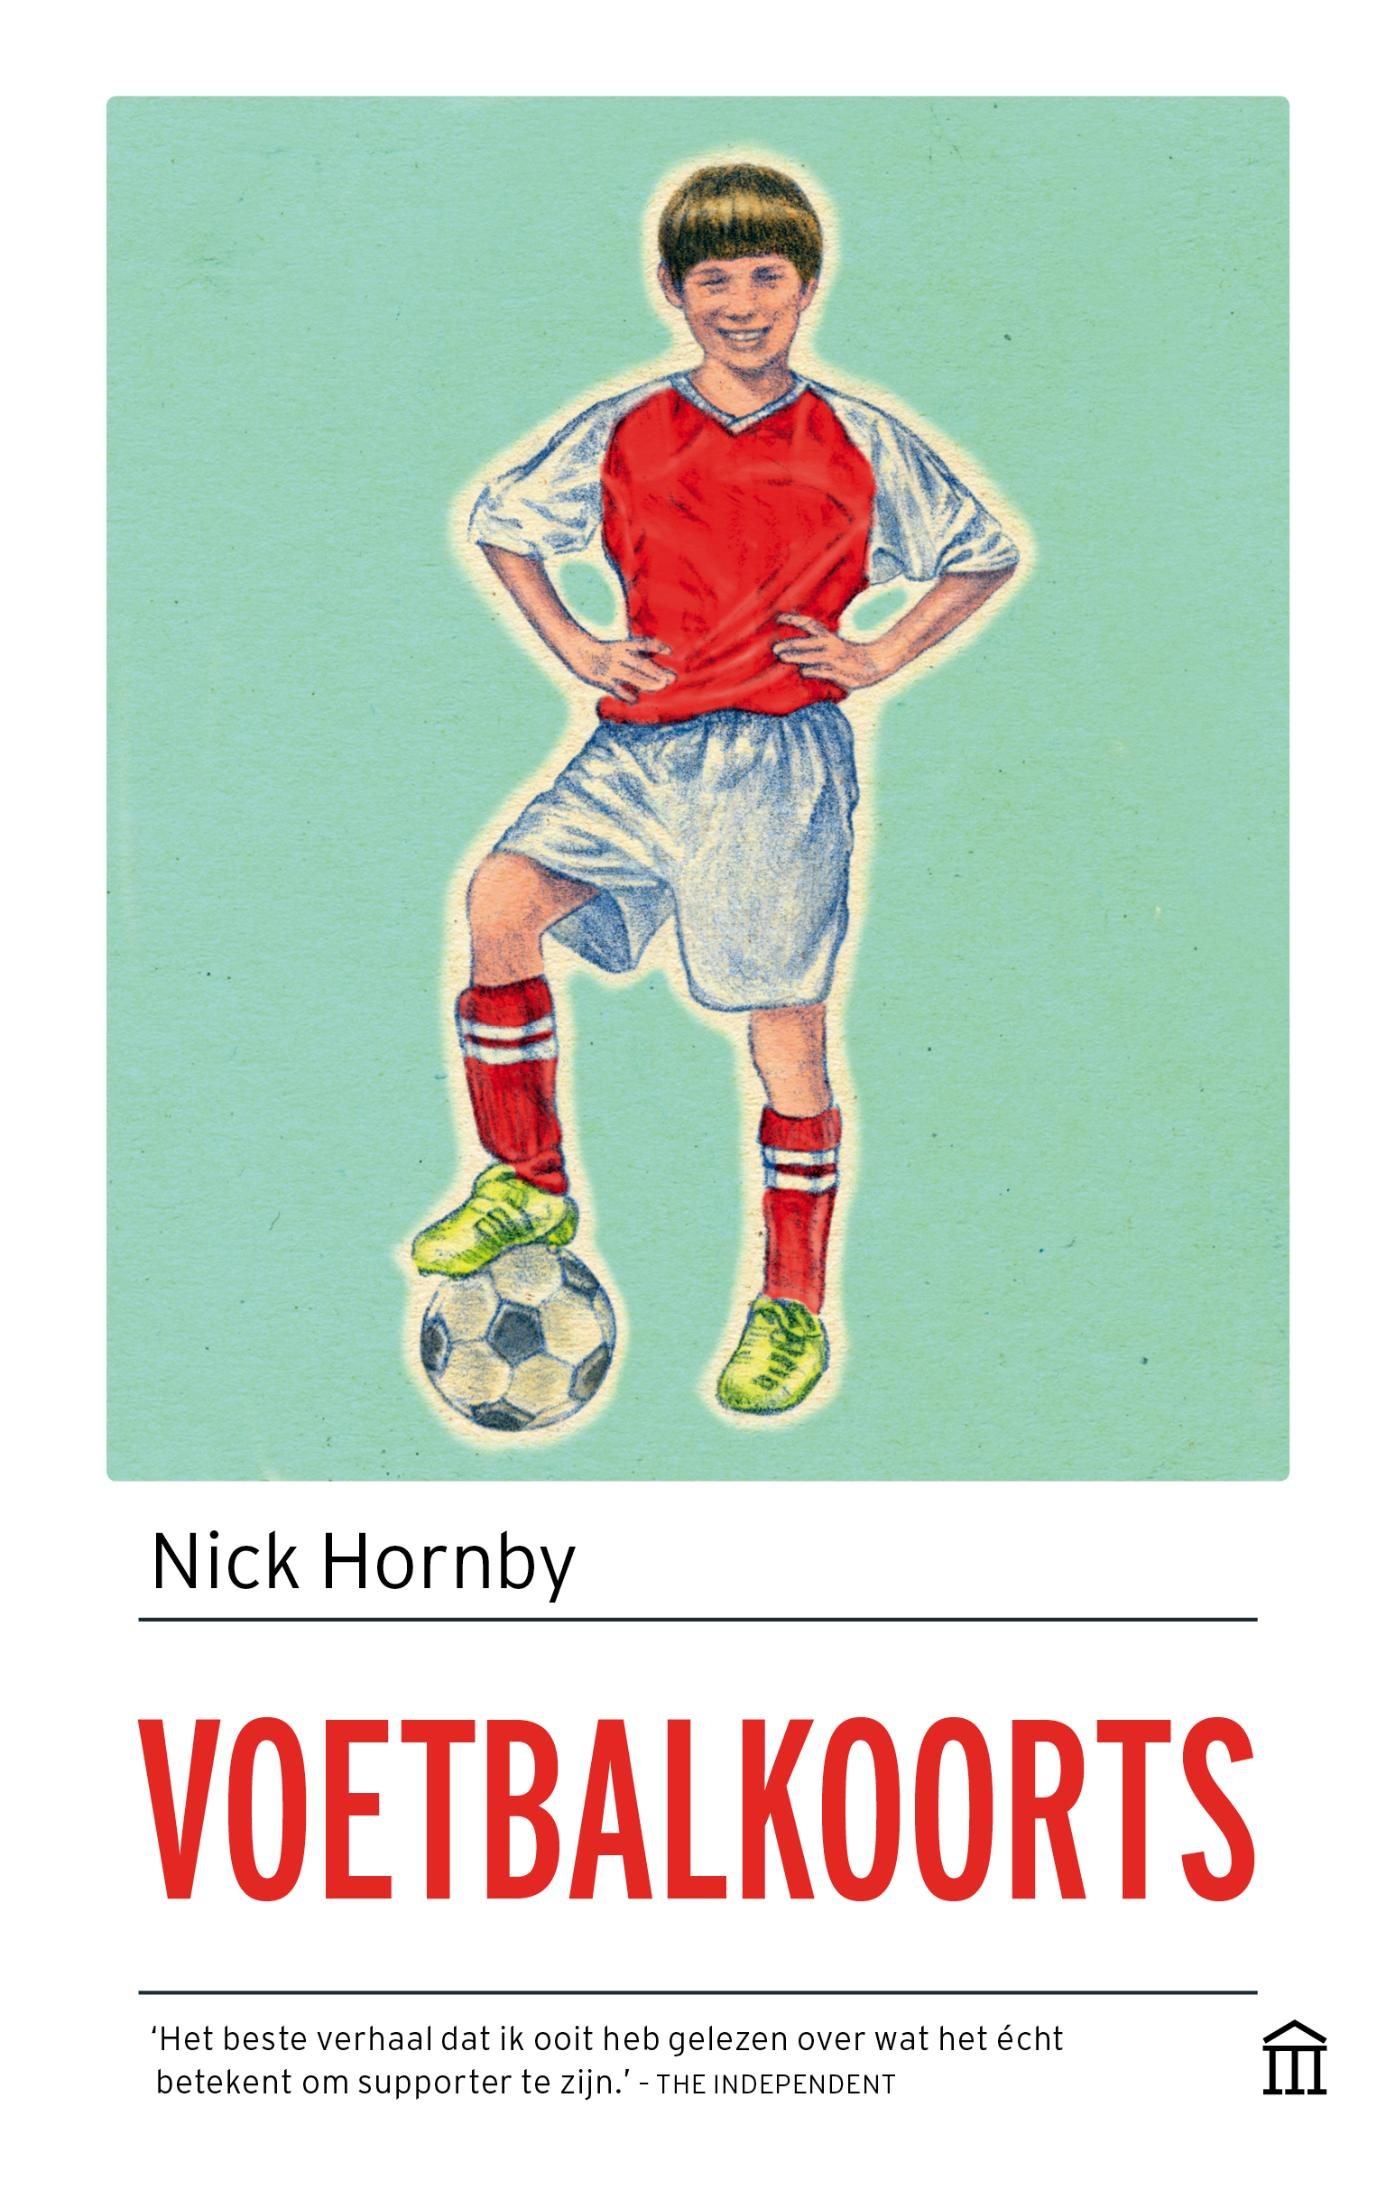 Voetbalkoorts